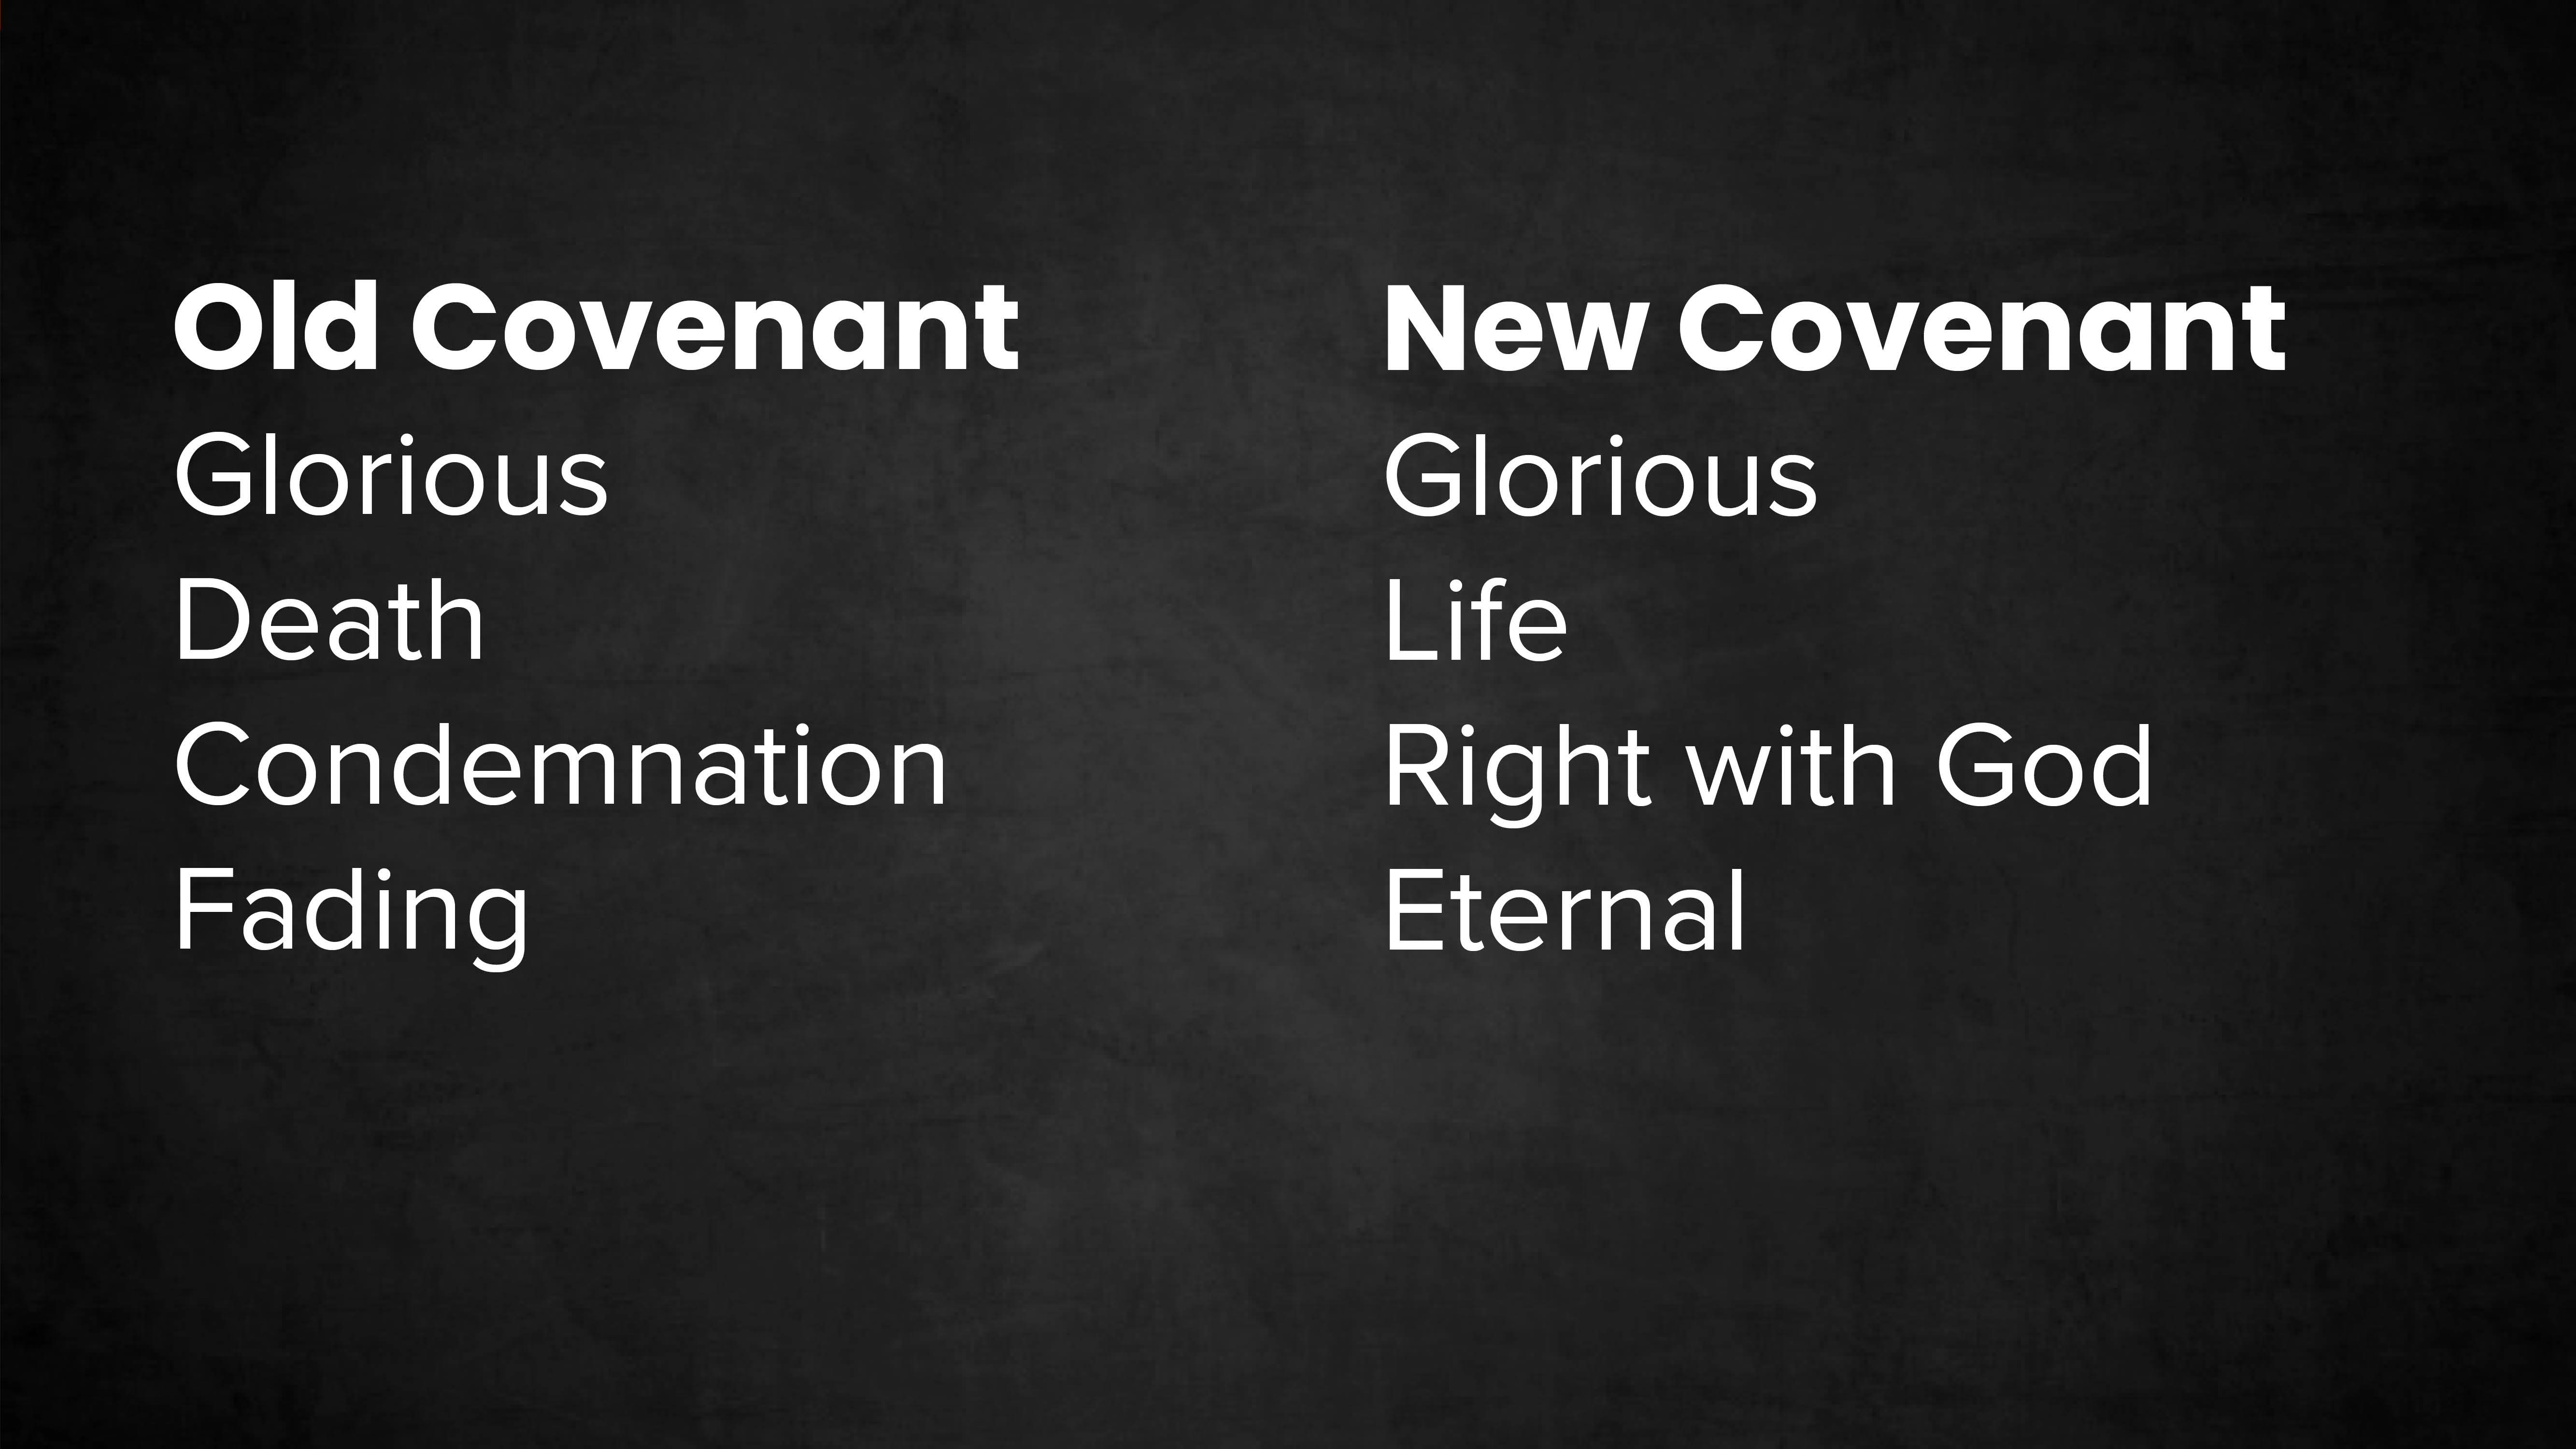 Old and New Covenant